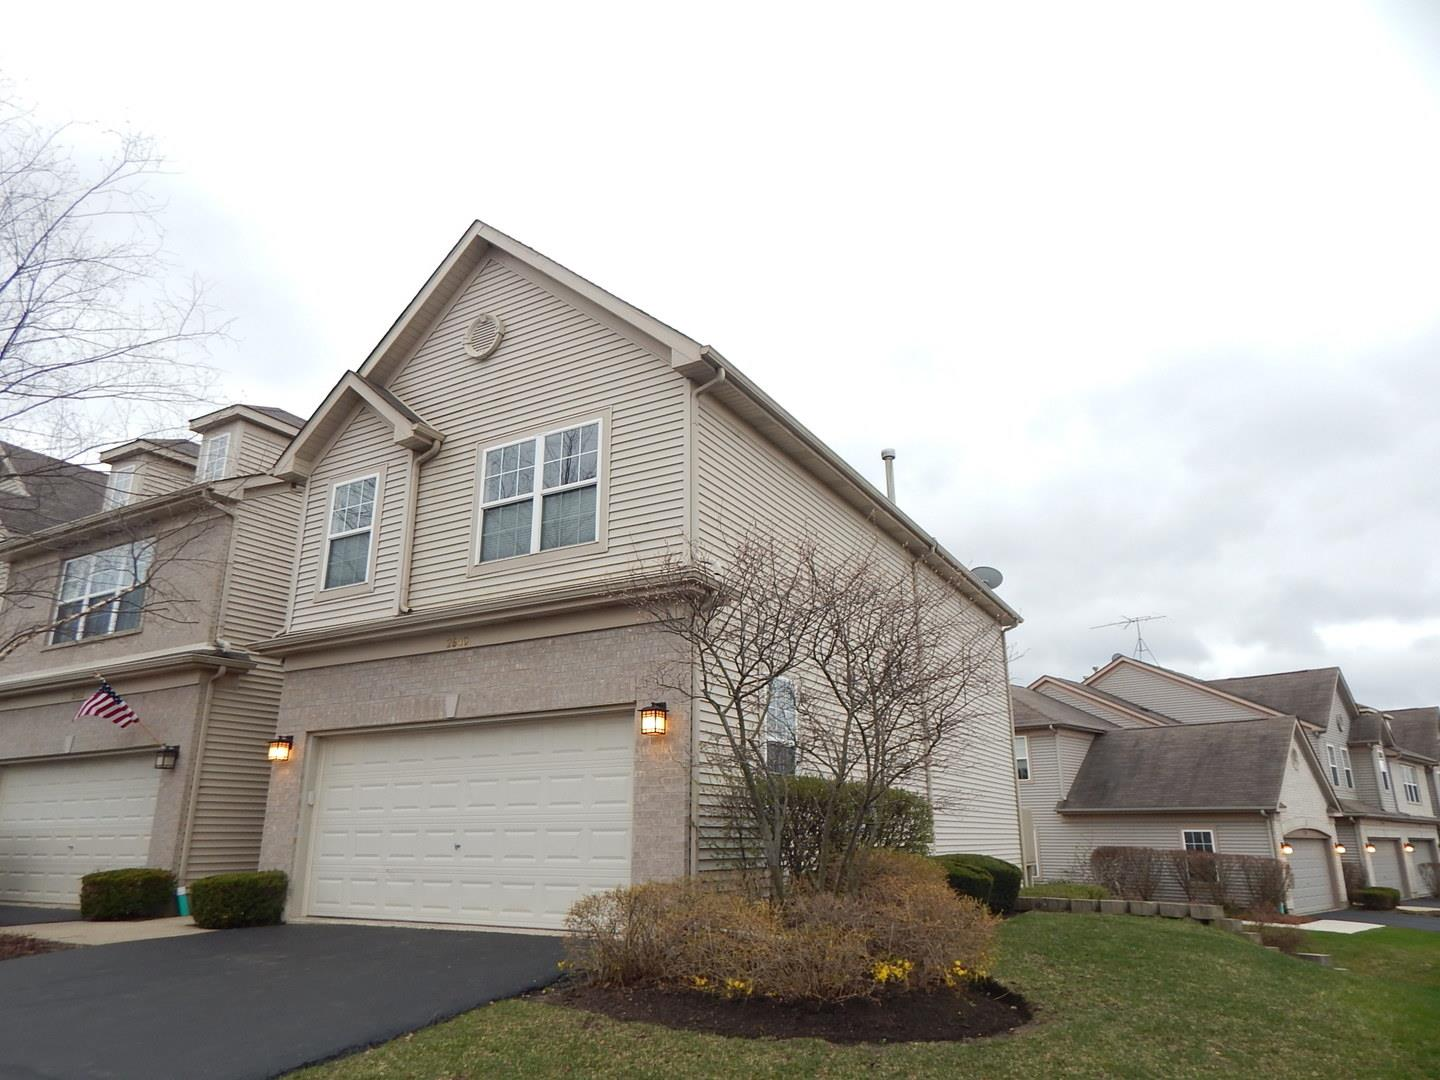 2640 Granite Court, Crystal Lake, IL 60012 - #: 10912272